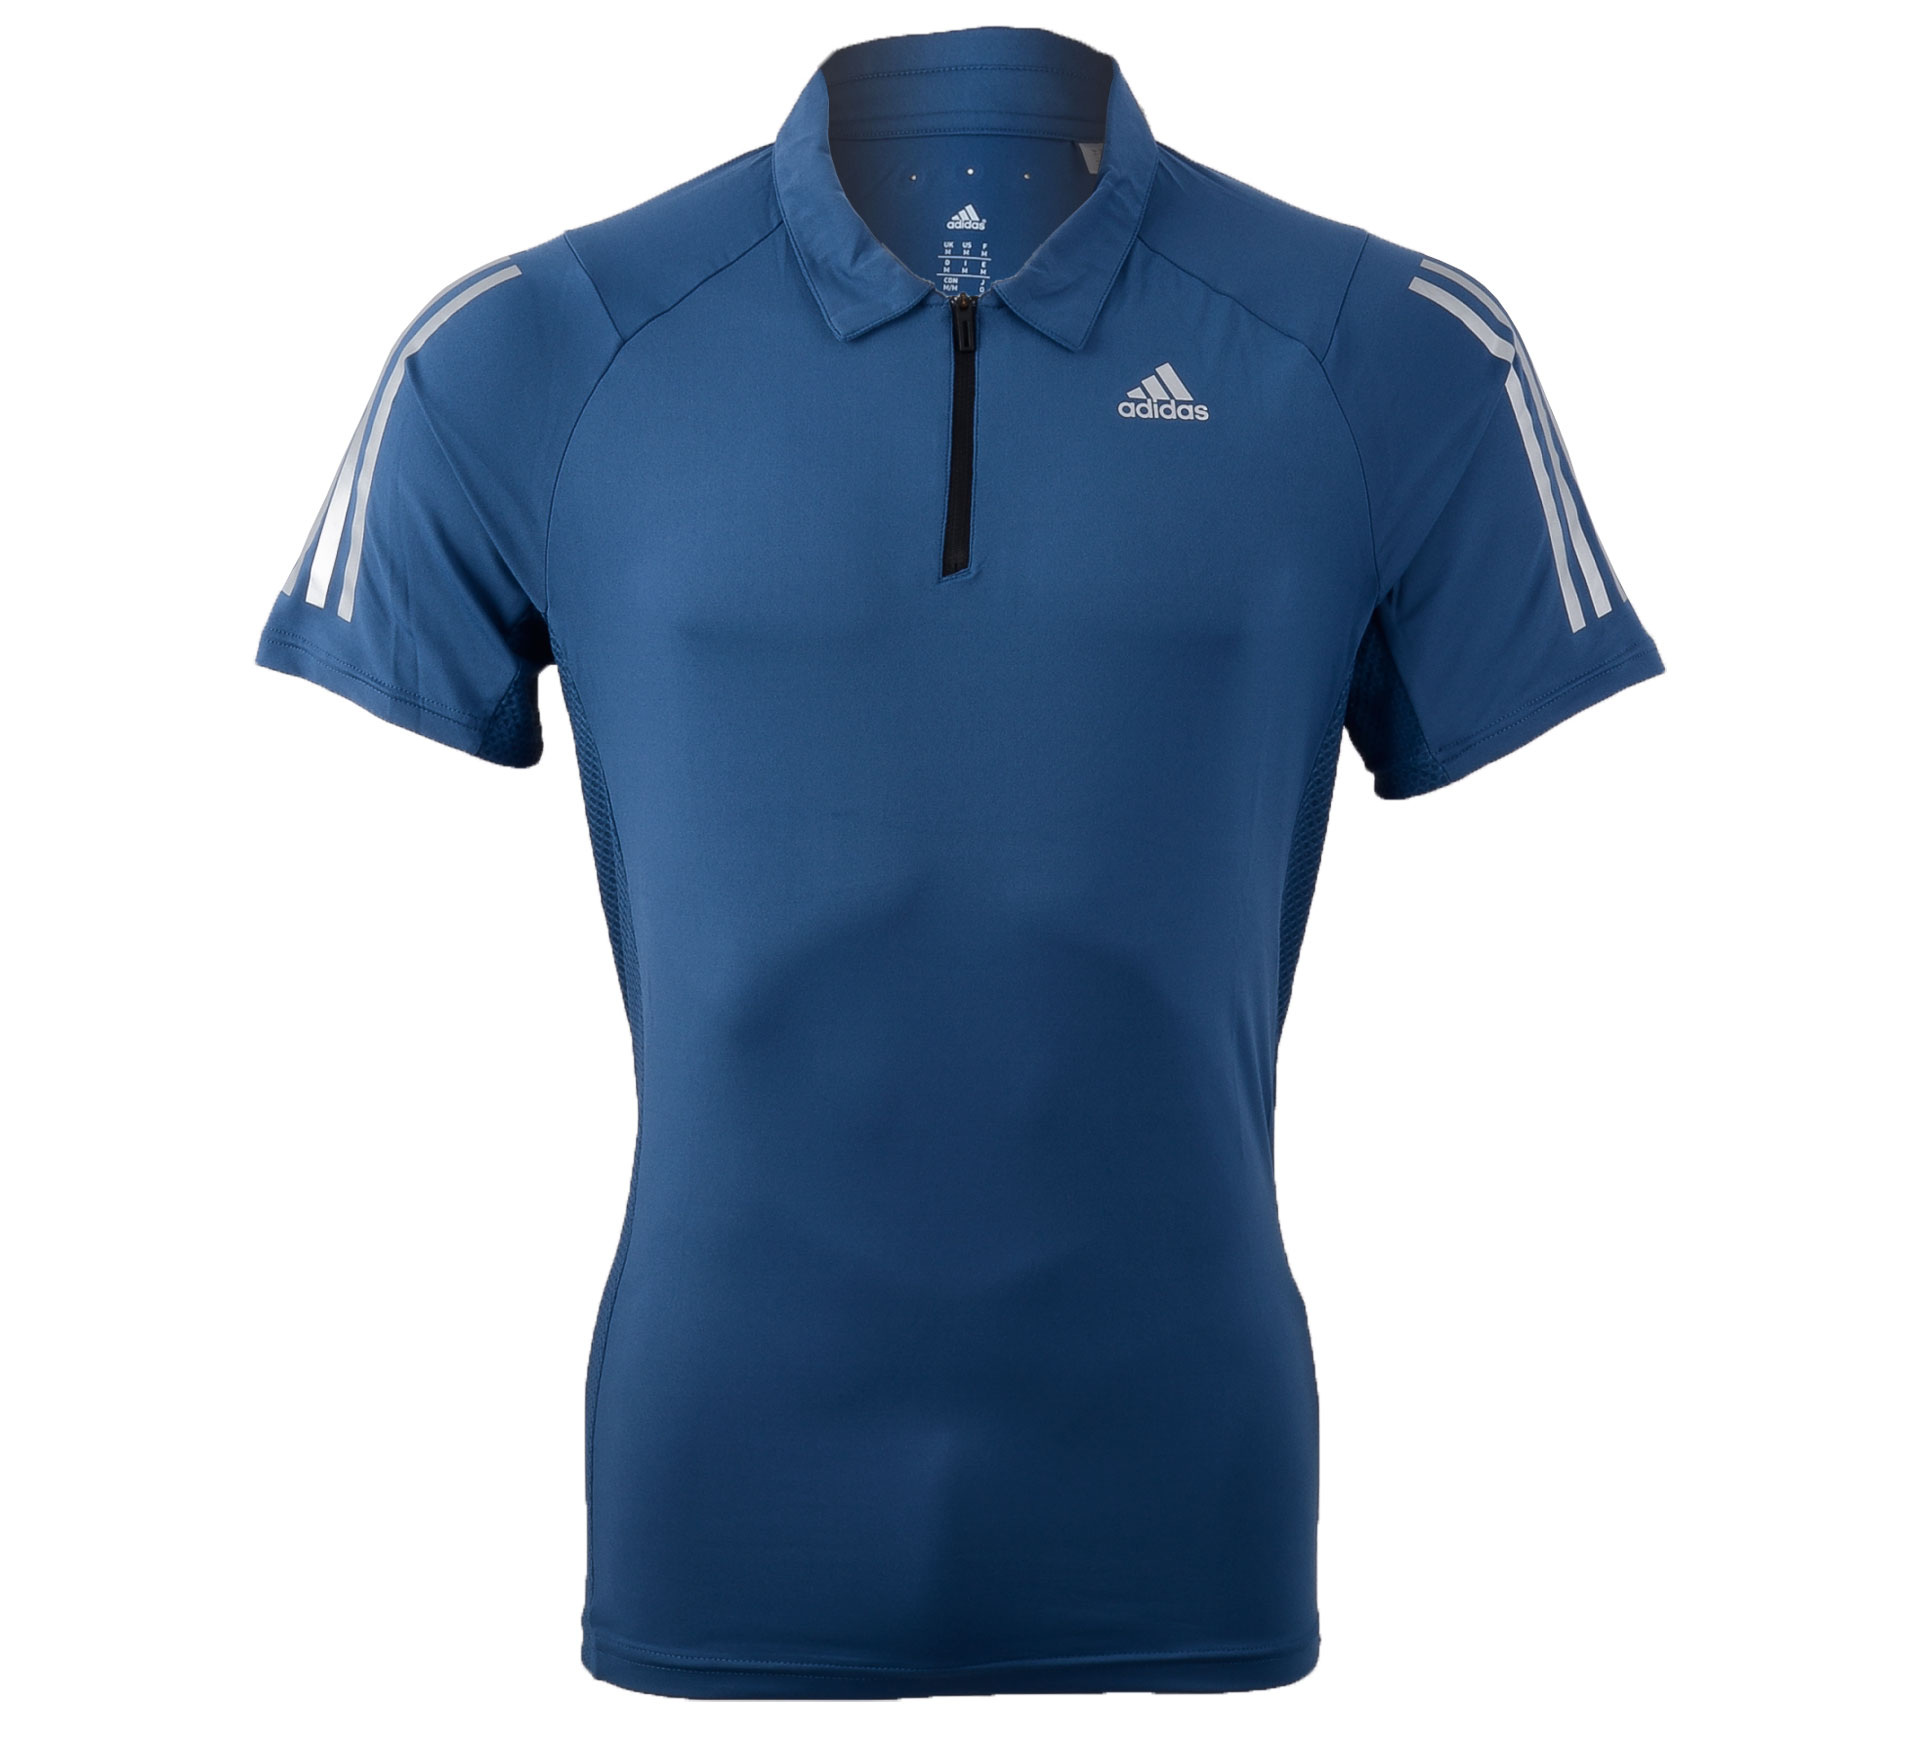 Adidas  Cool365 Polo donker blauw - zilver